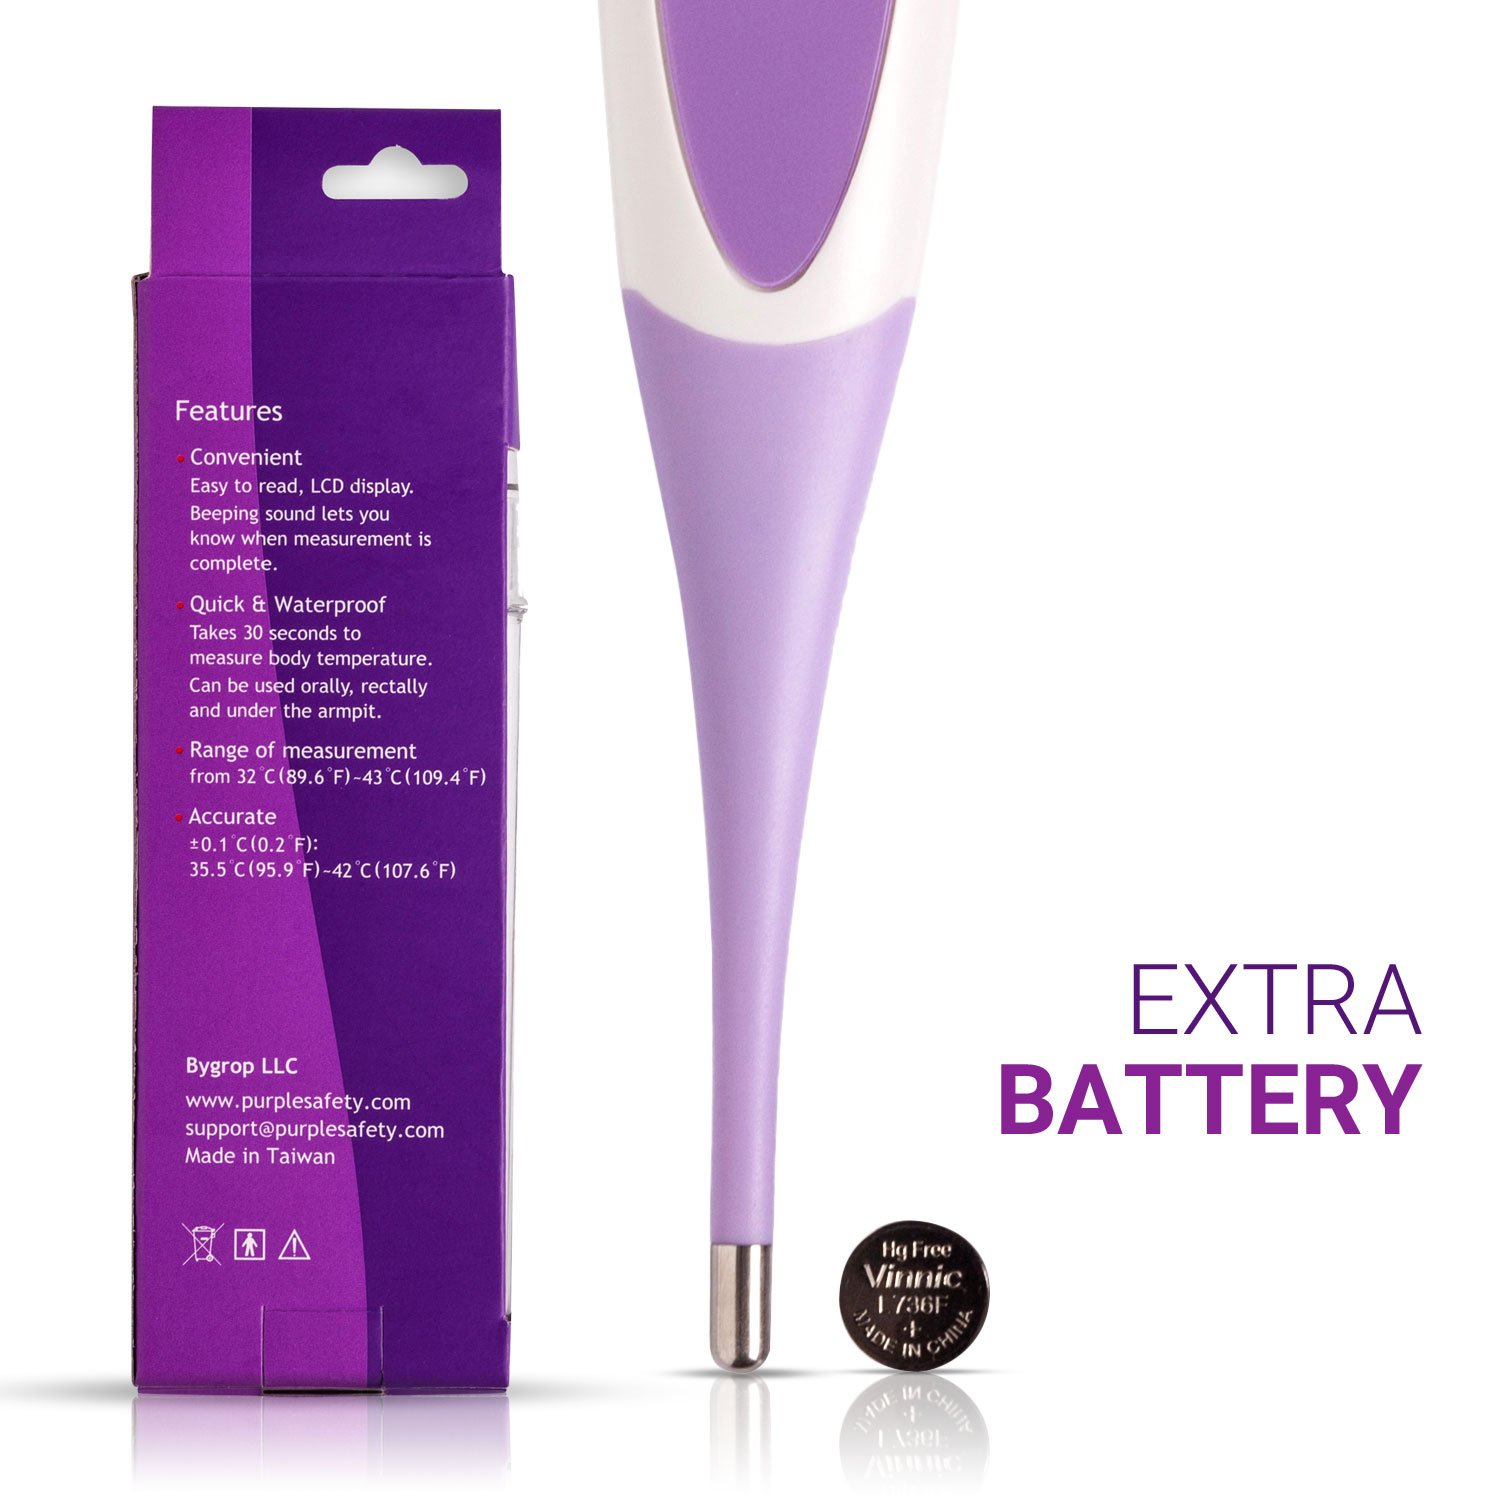 Baby Digital Thermometer - For Infants, Babies, Kids - 30 Seconds Read - FDA CE Approved - Flexible Tip - Waterproof - Extra Battery Included - Clinical Fever Alarm - Rectal Under The Arm/Tongue by Purple Safety (Image #8)